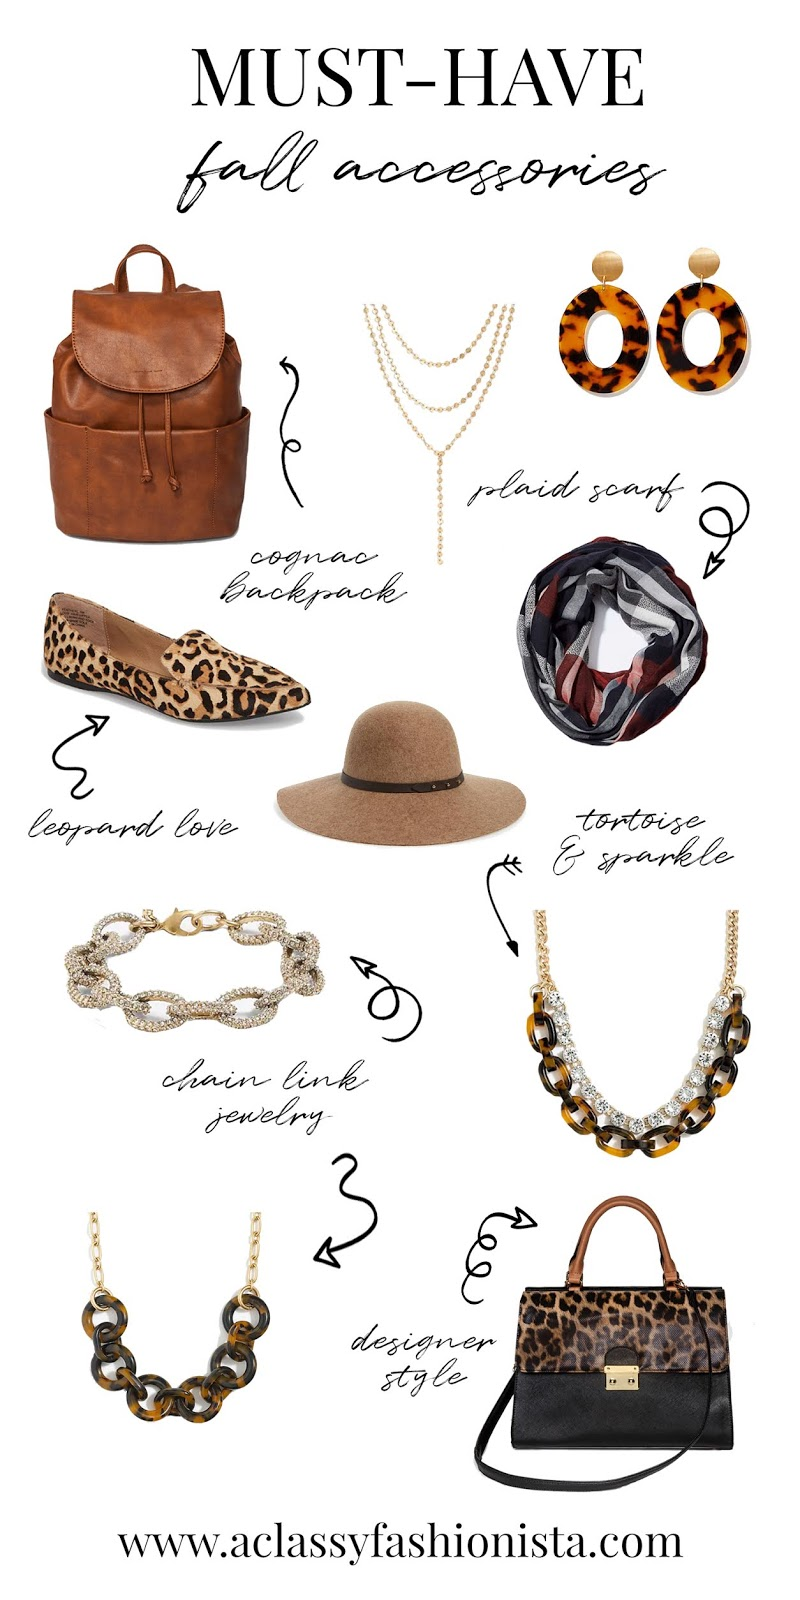 2019 year lifestyle- Have must accessories for fall